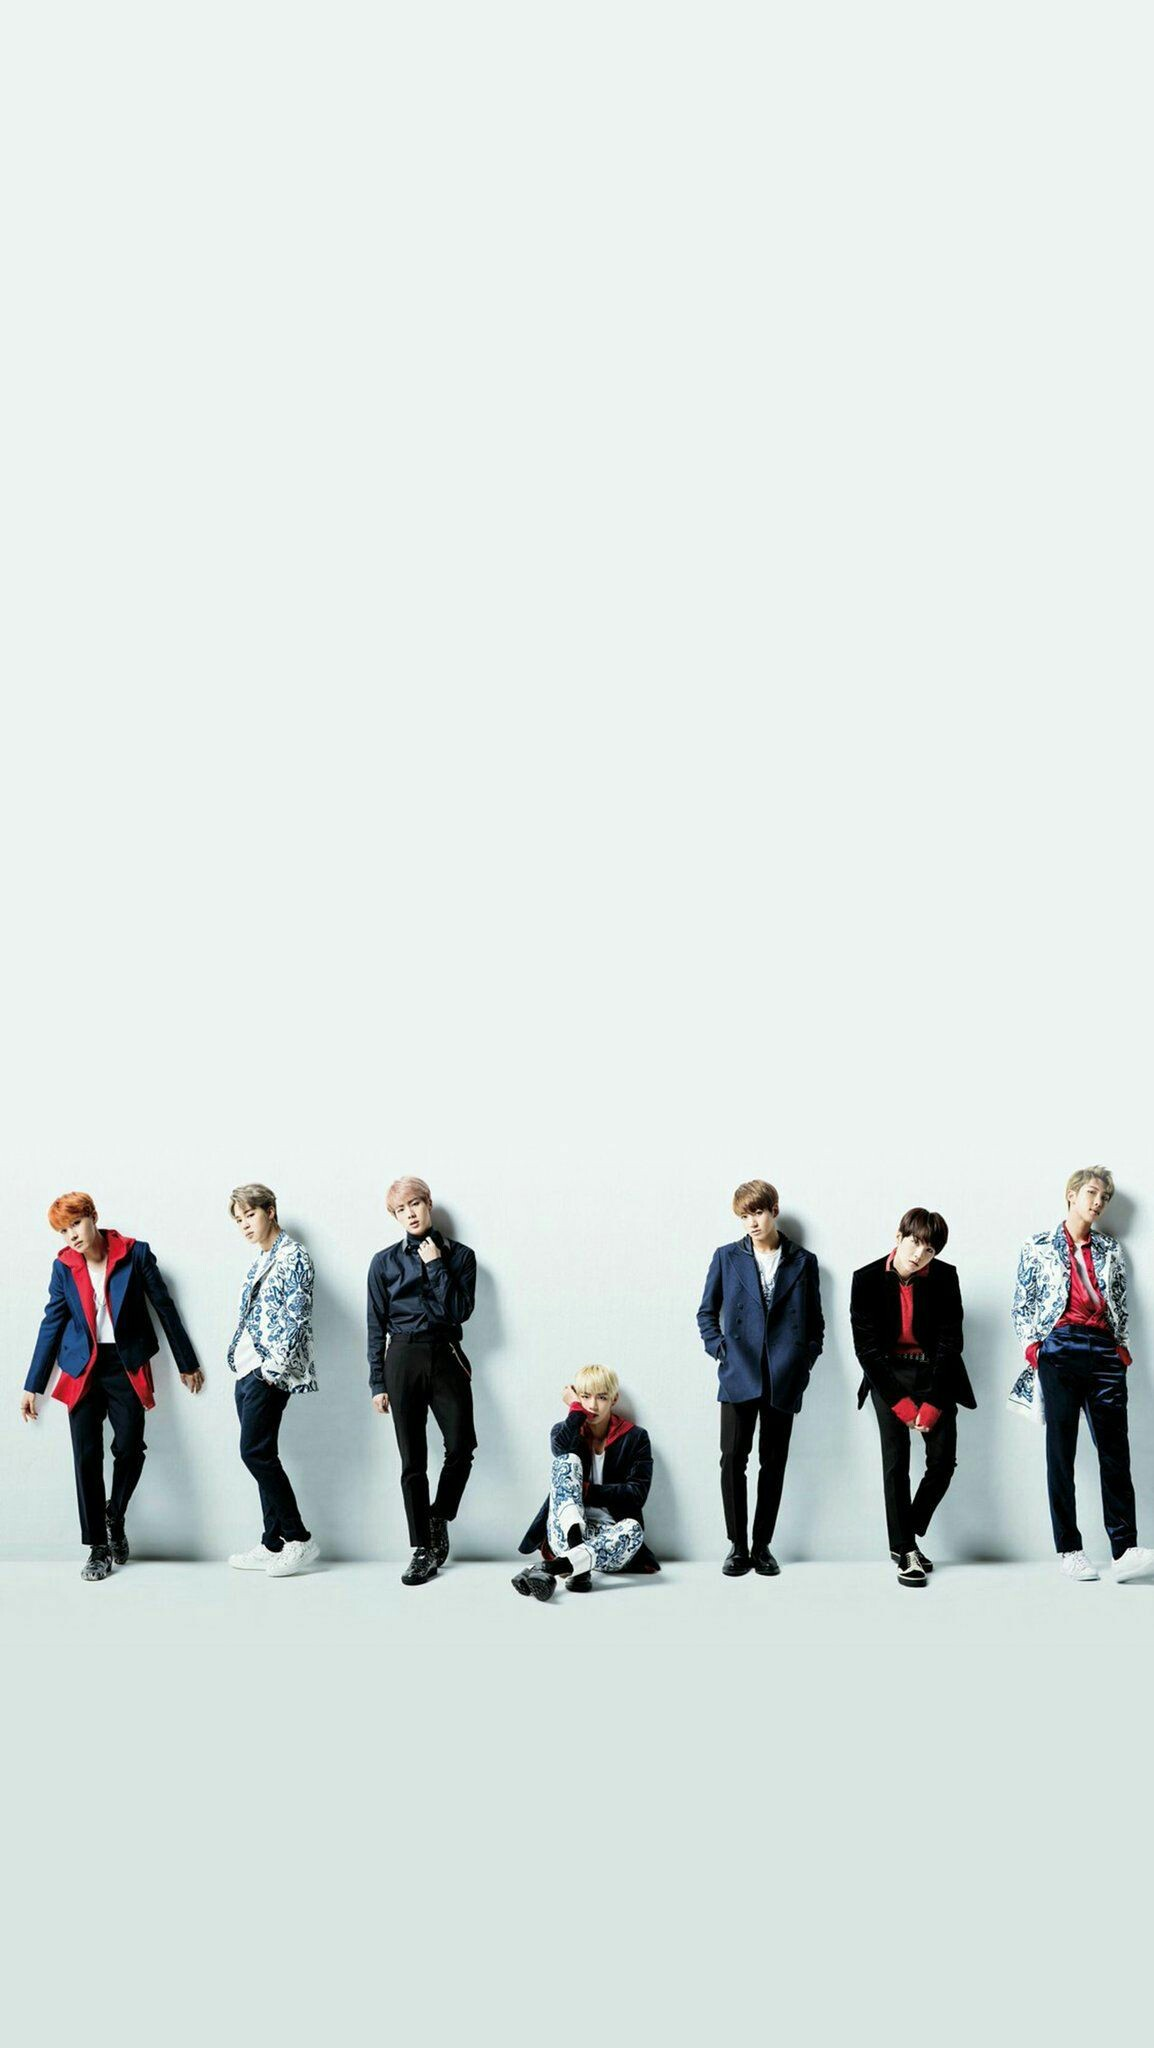 1154x2048 BTS images Bangtan Boys HD wallpaper and background photos